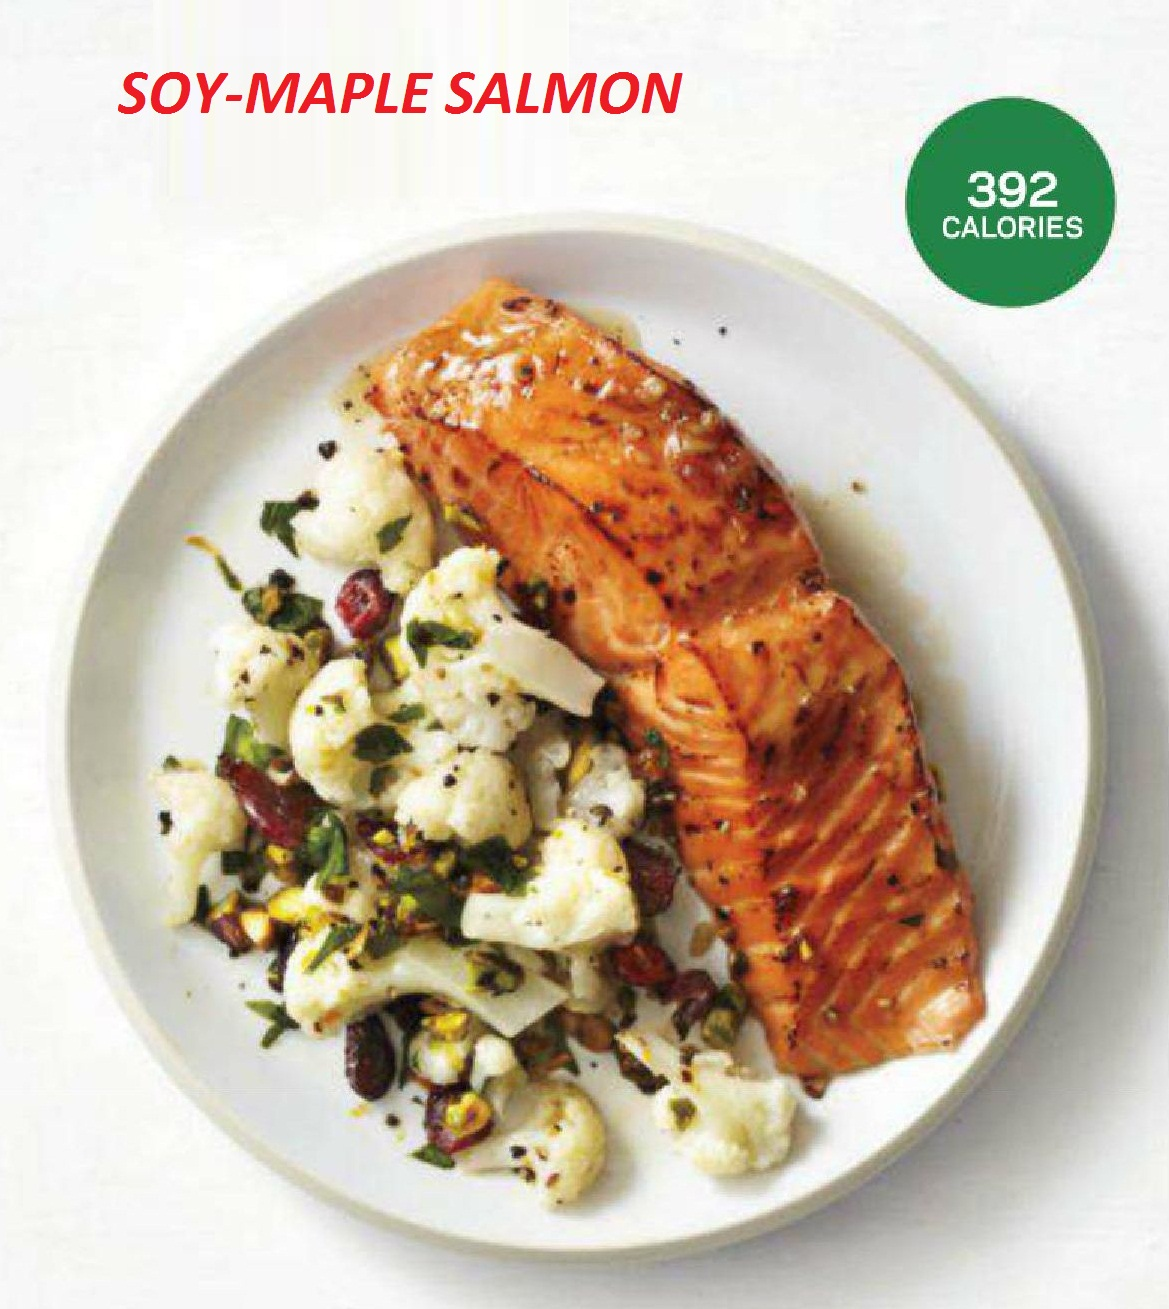 Soy maple salmon healthy fish recipe 392 calories how for Tasty fish recipes